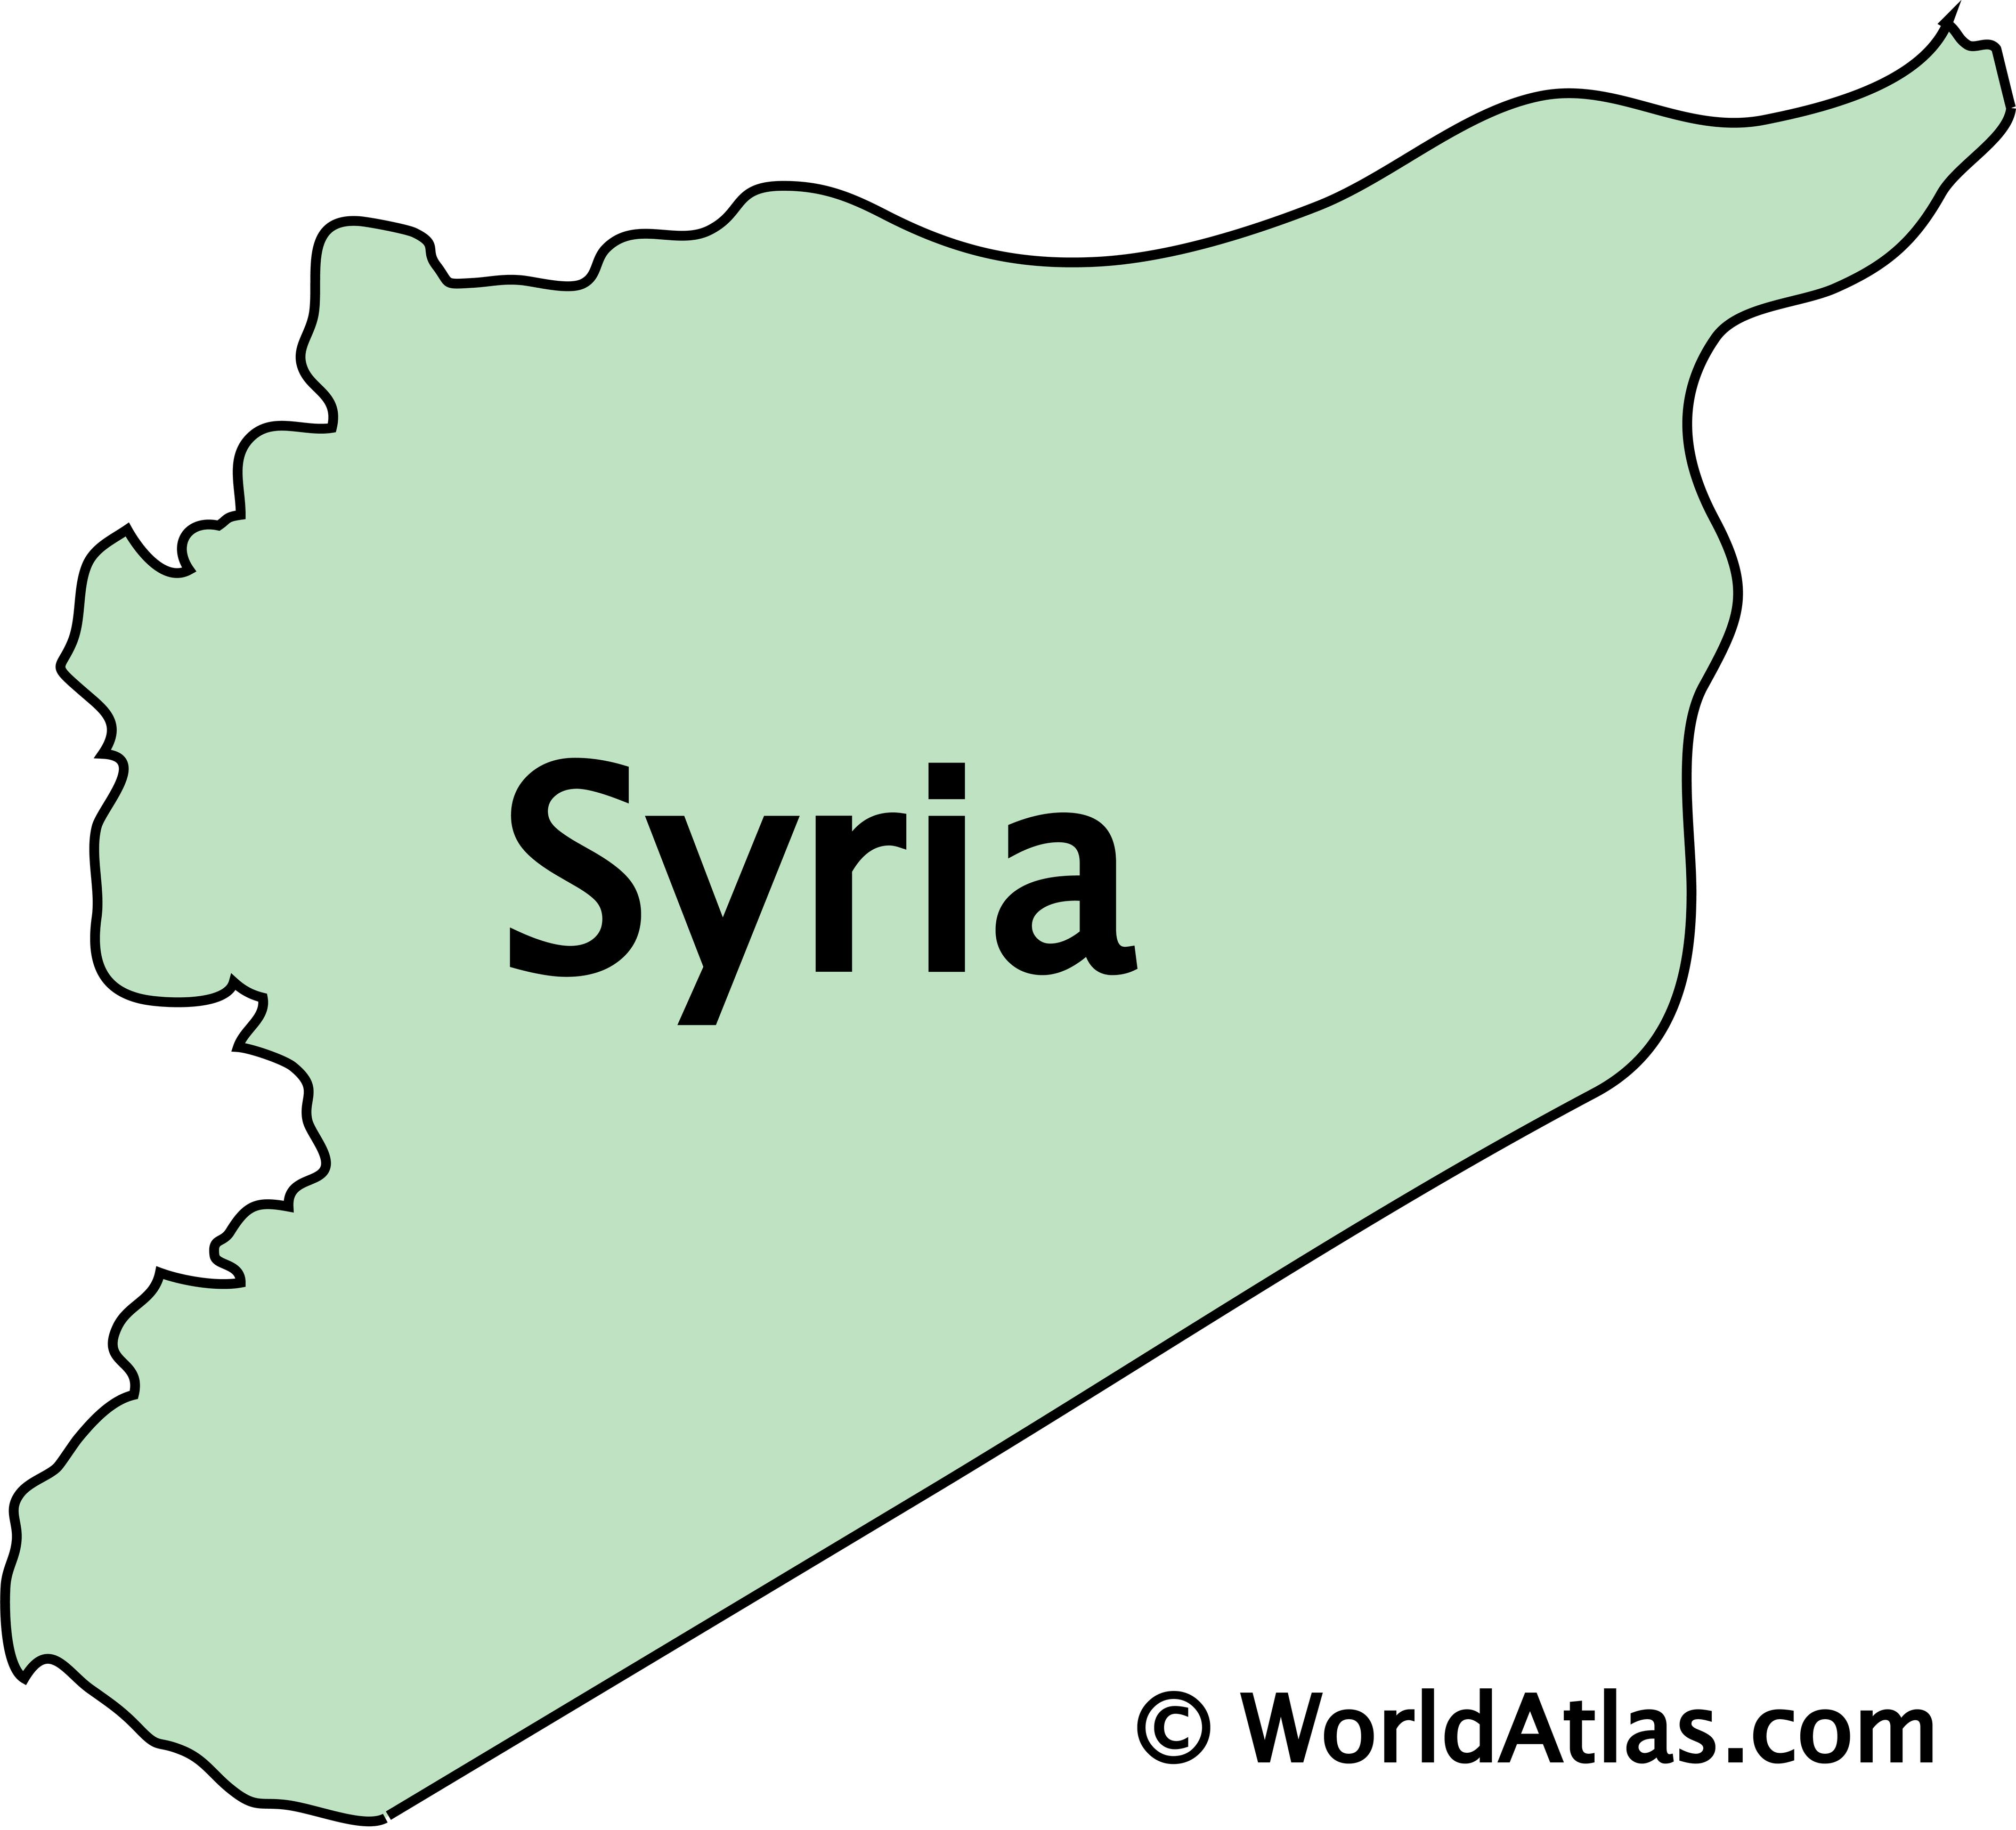 Outline Map of Syria